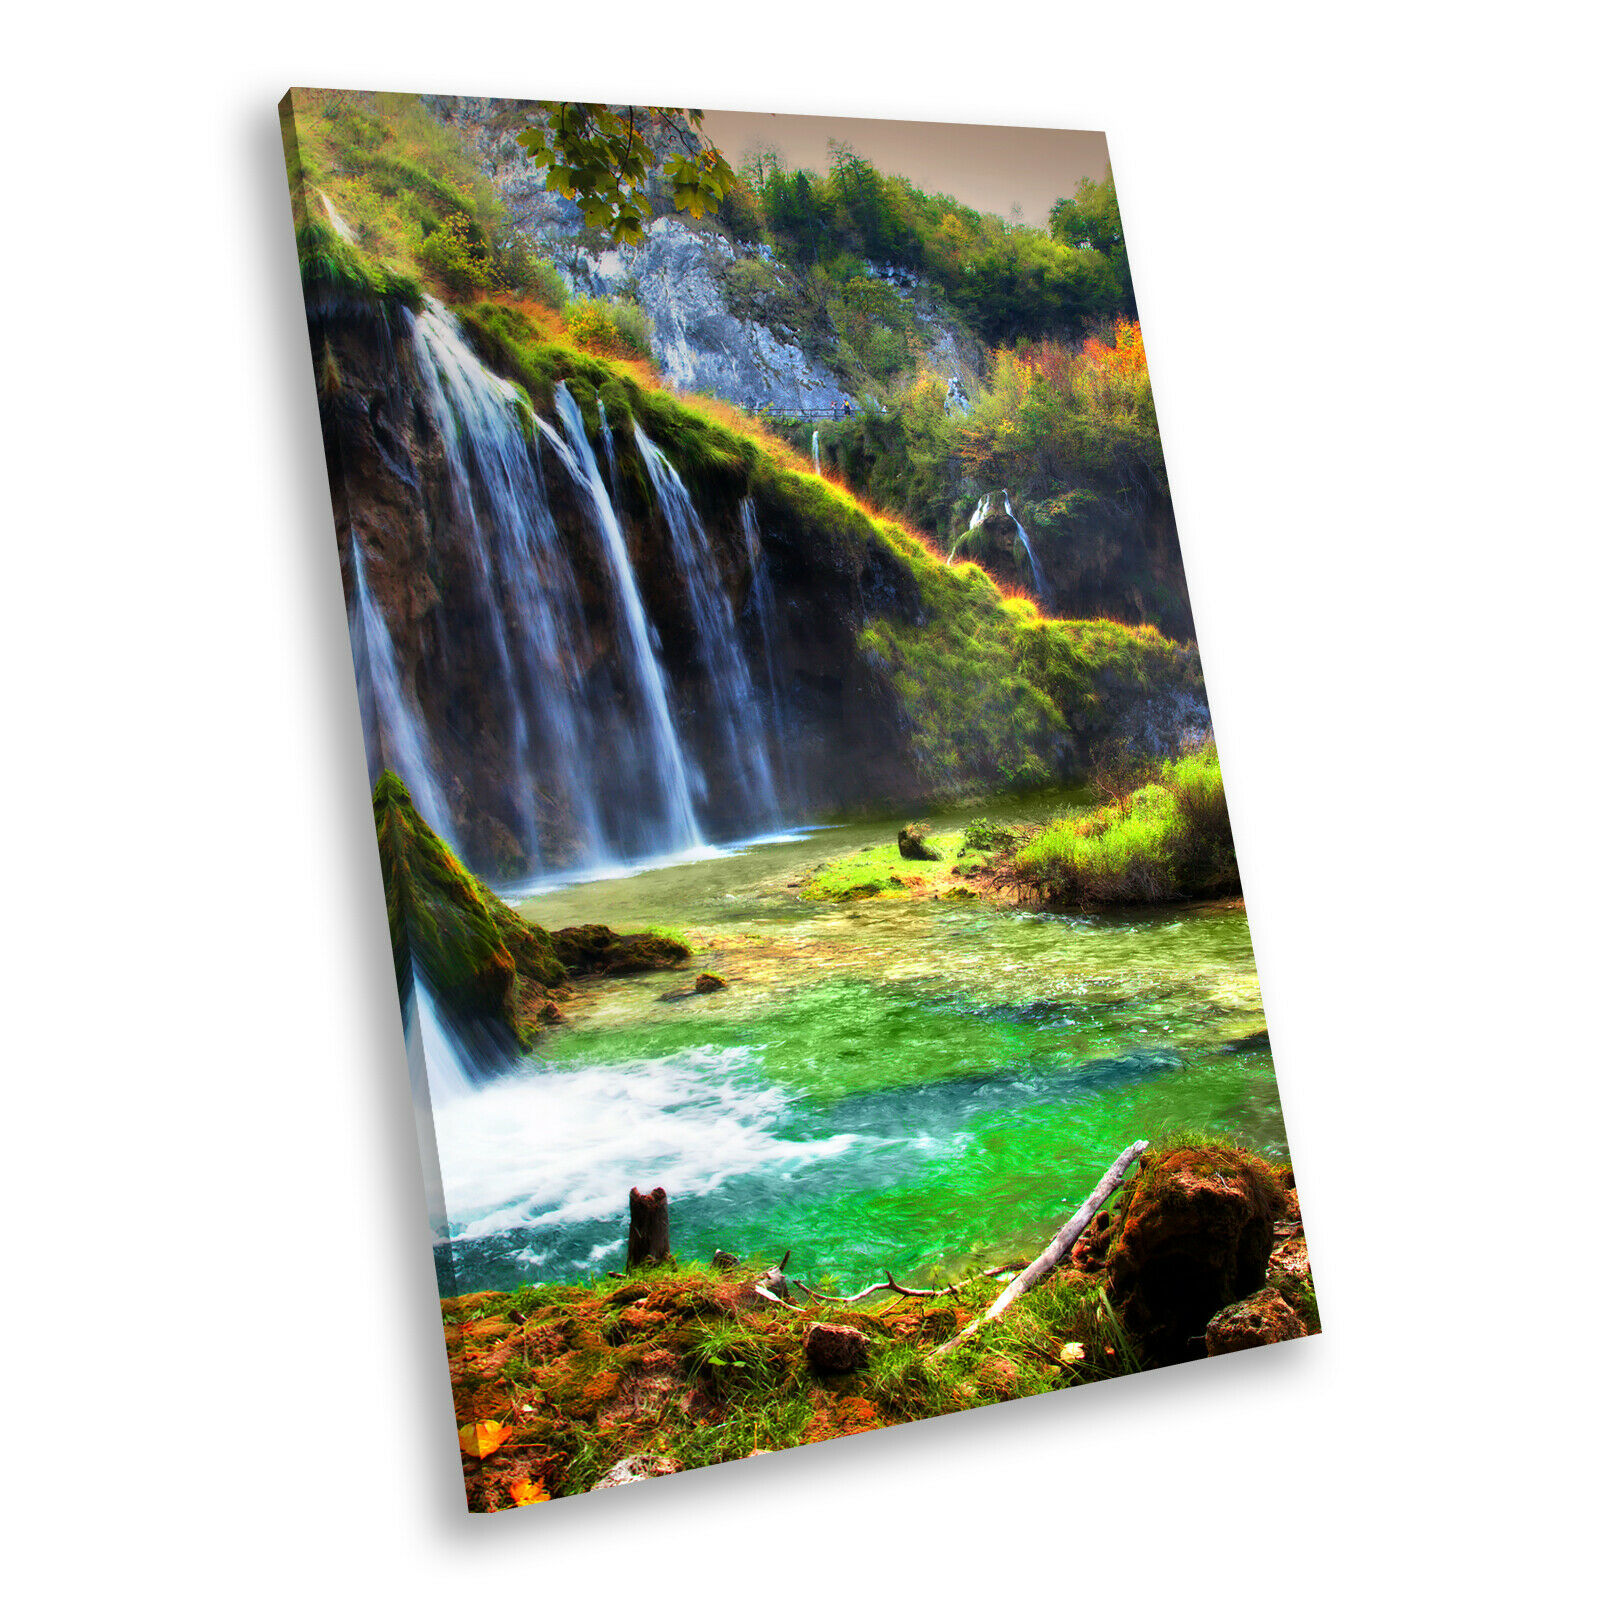 Colourful Waterfall Nature Portrait Scenic Canvas Wall Art Large Picture Prints